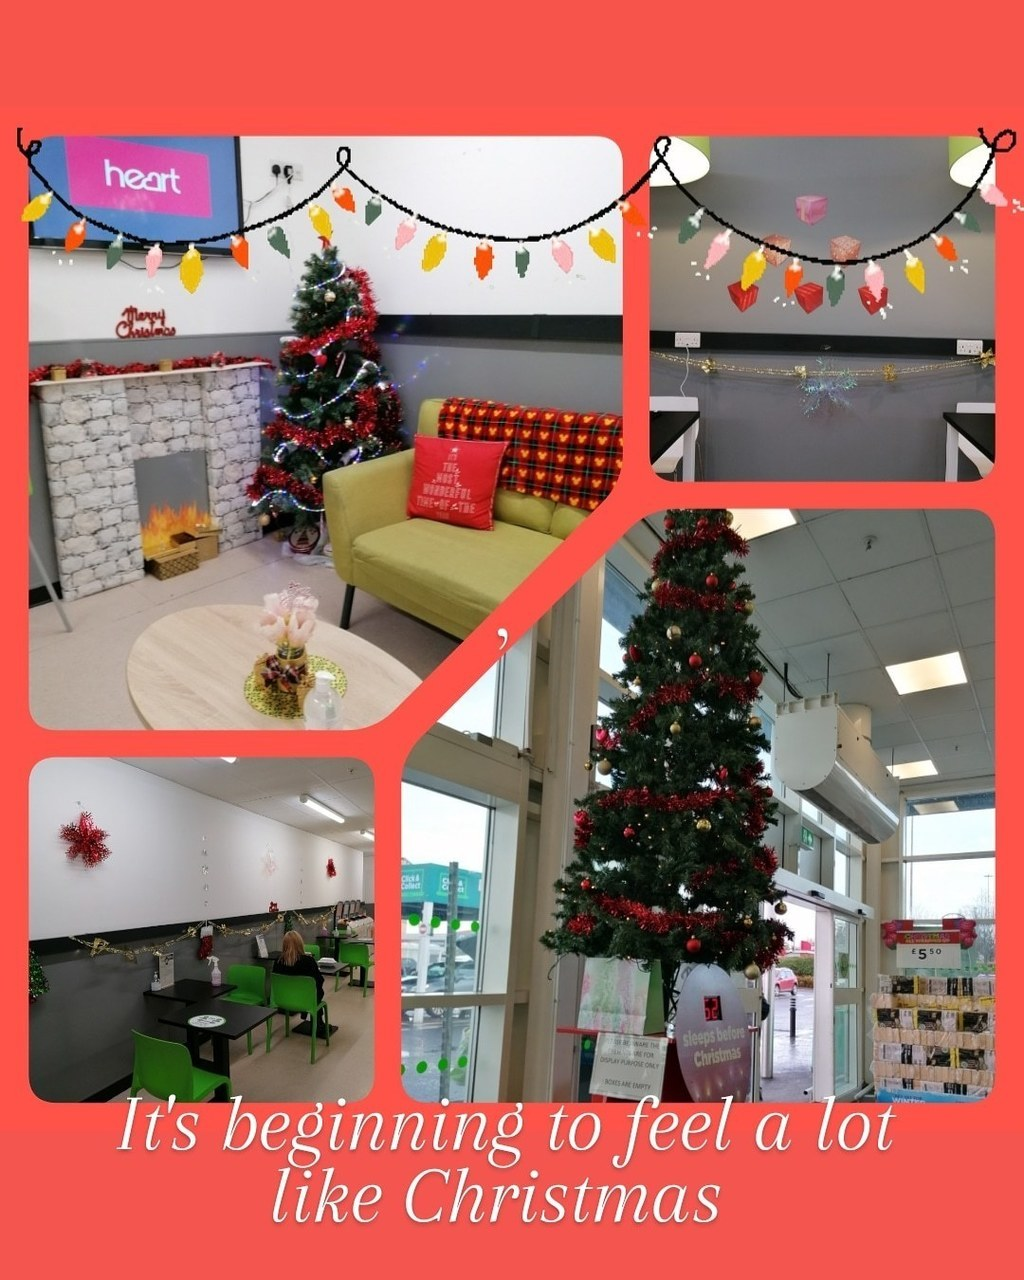 Christmas at Asda Motherwell  | Asda Motherwell